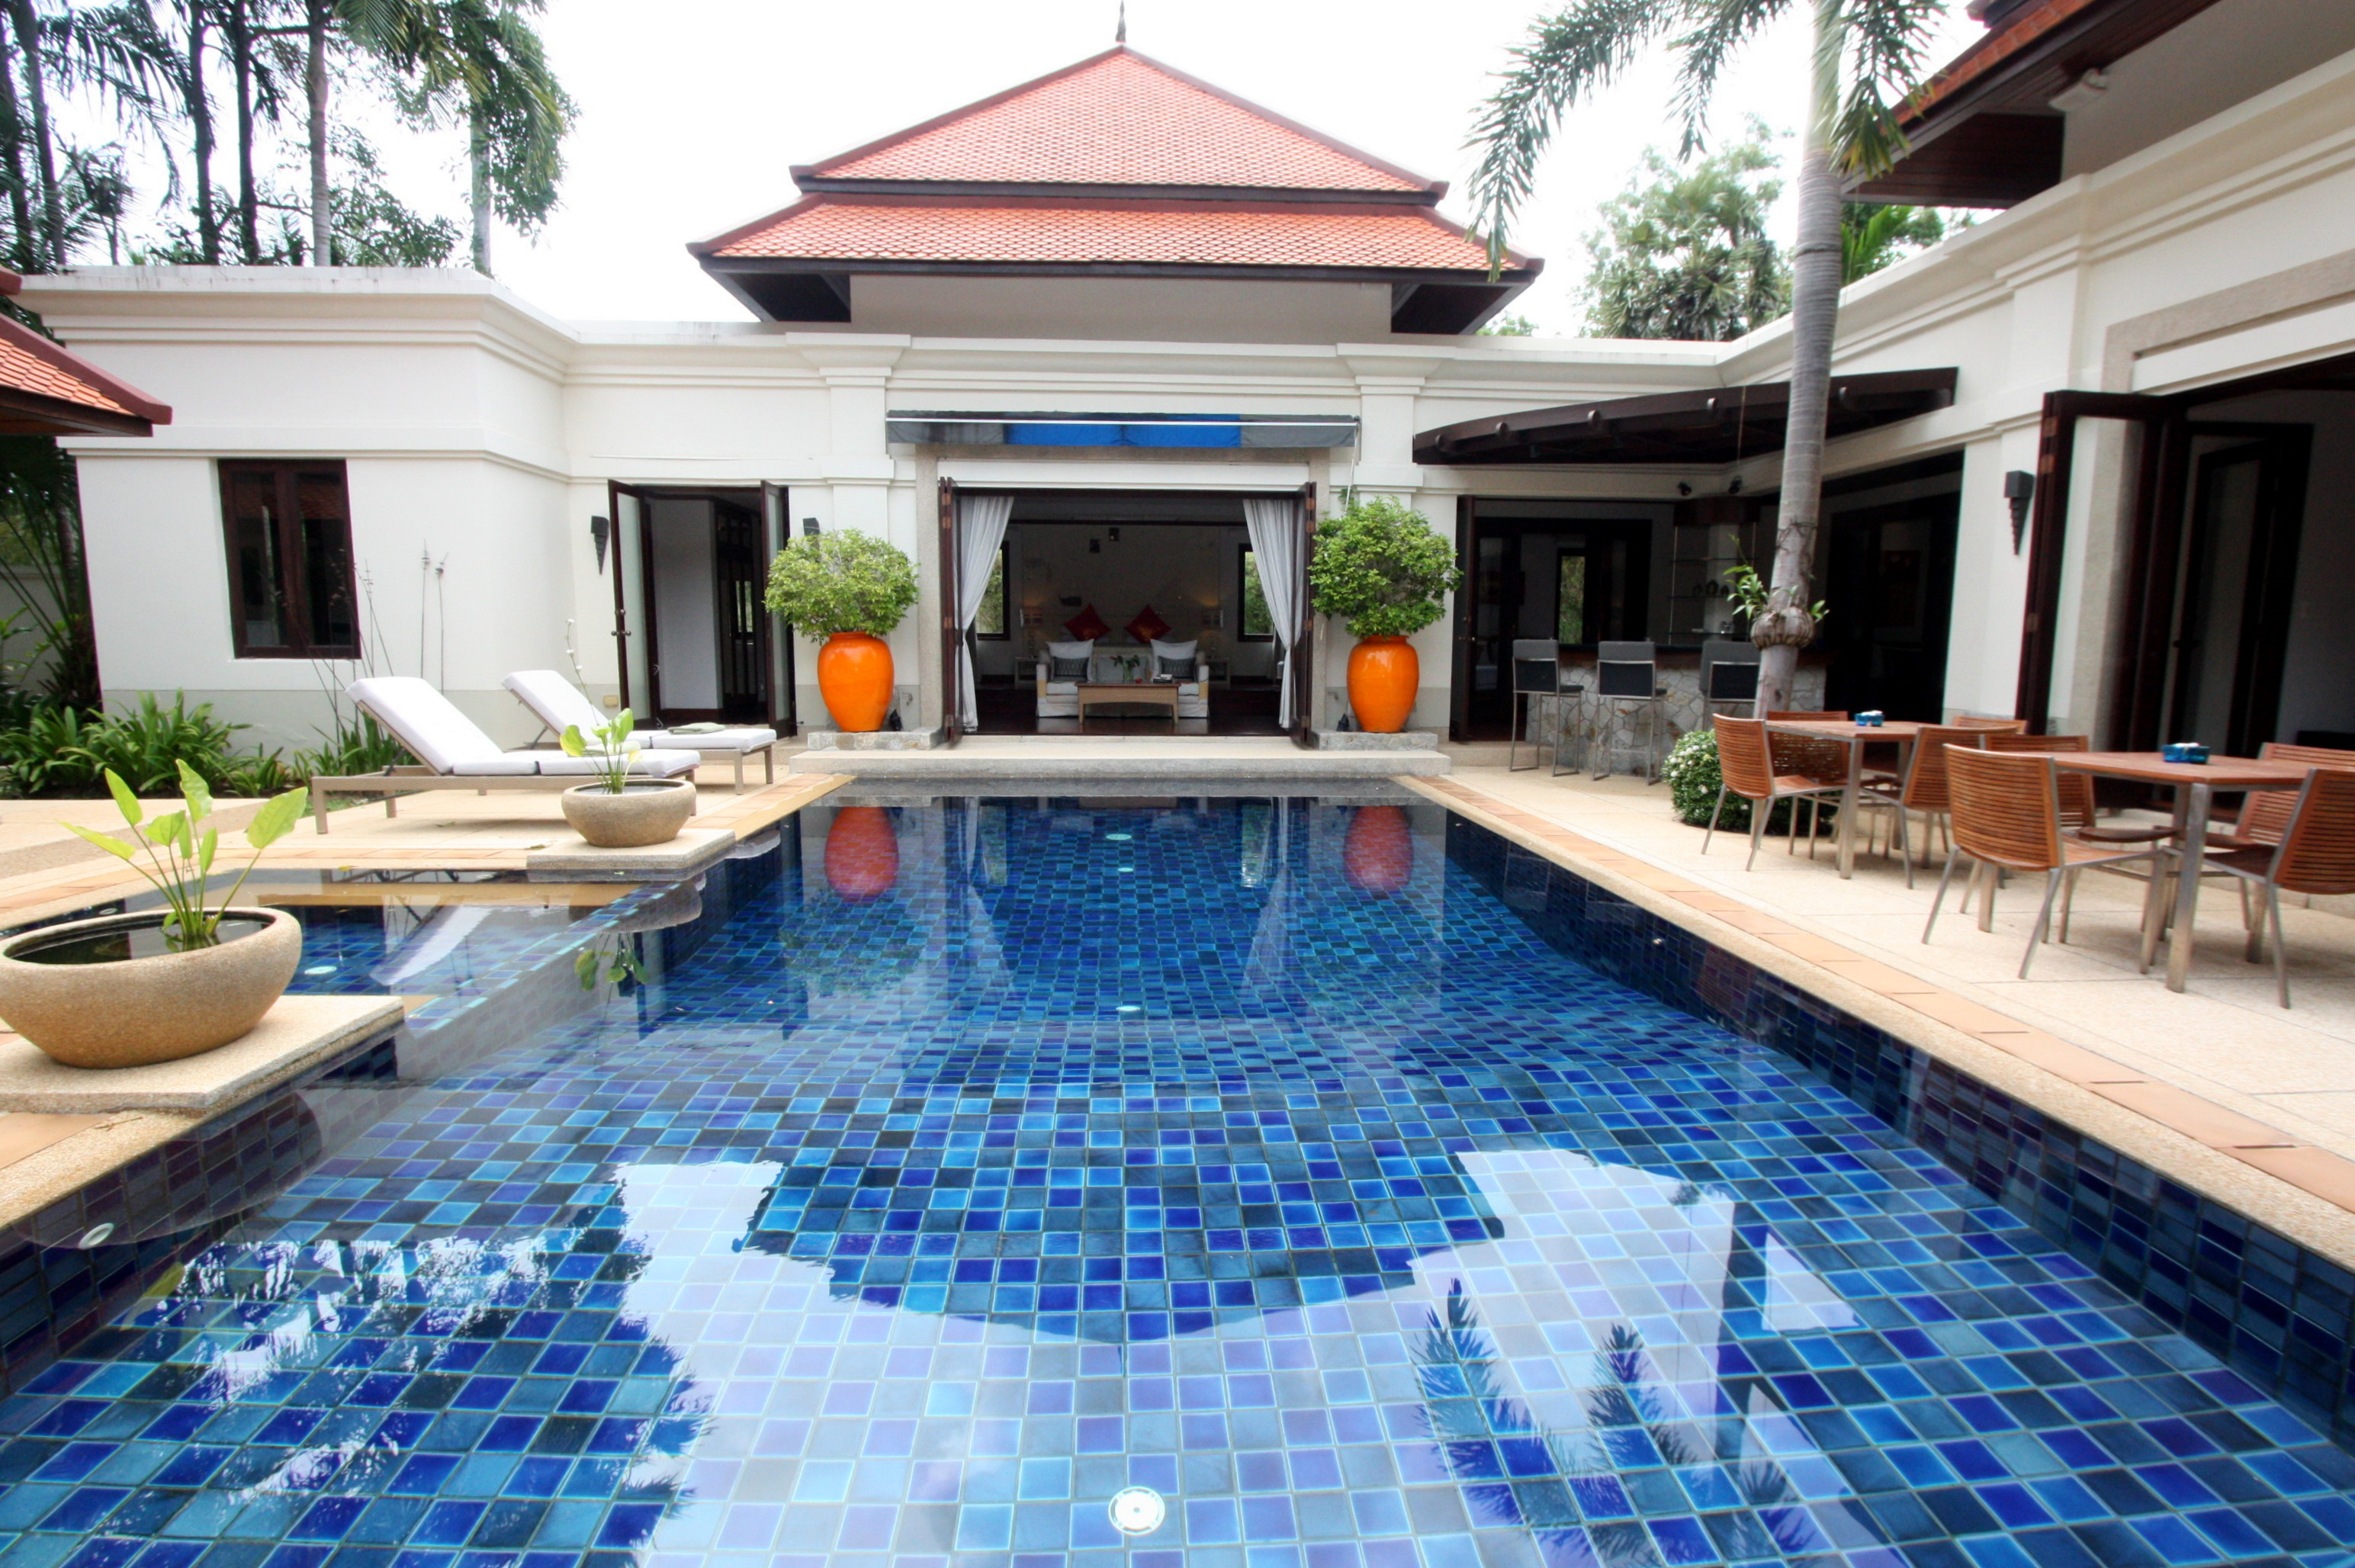 See Beautiful Family Pool Villa details